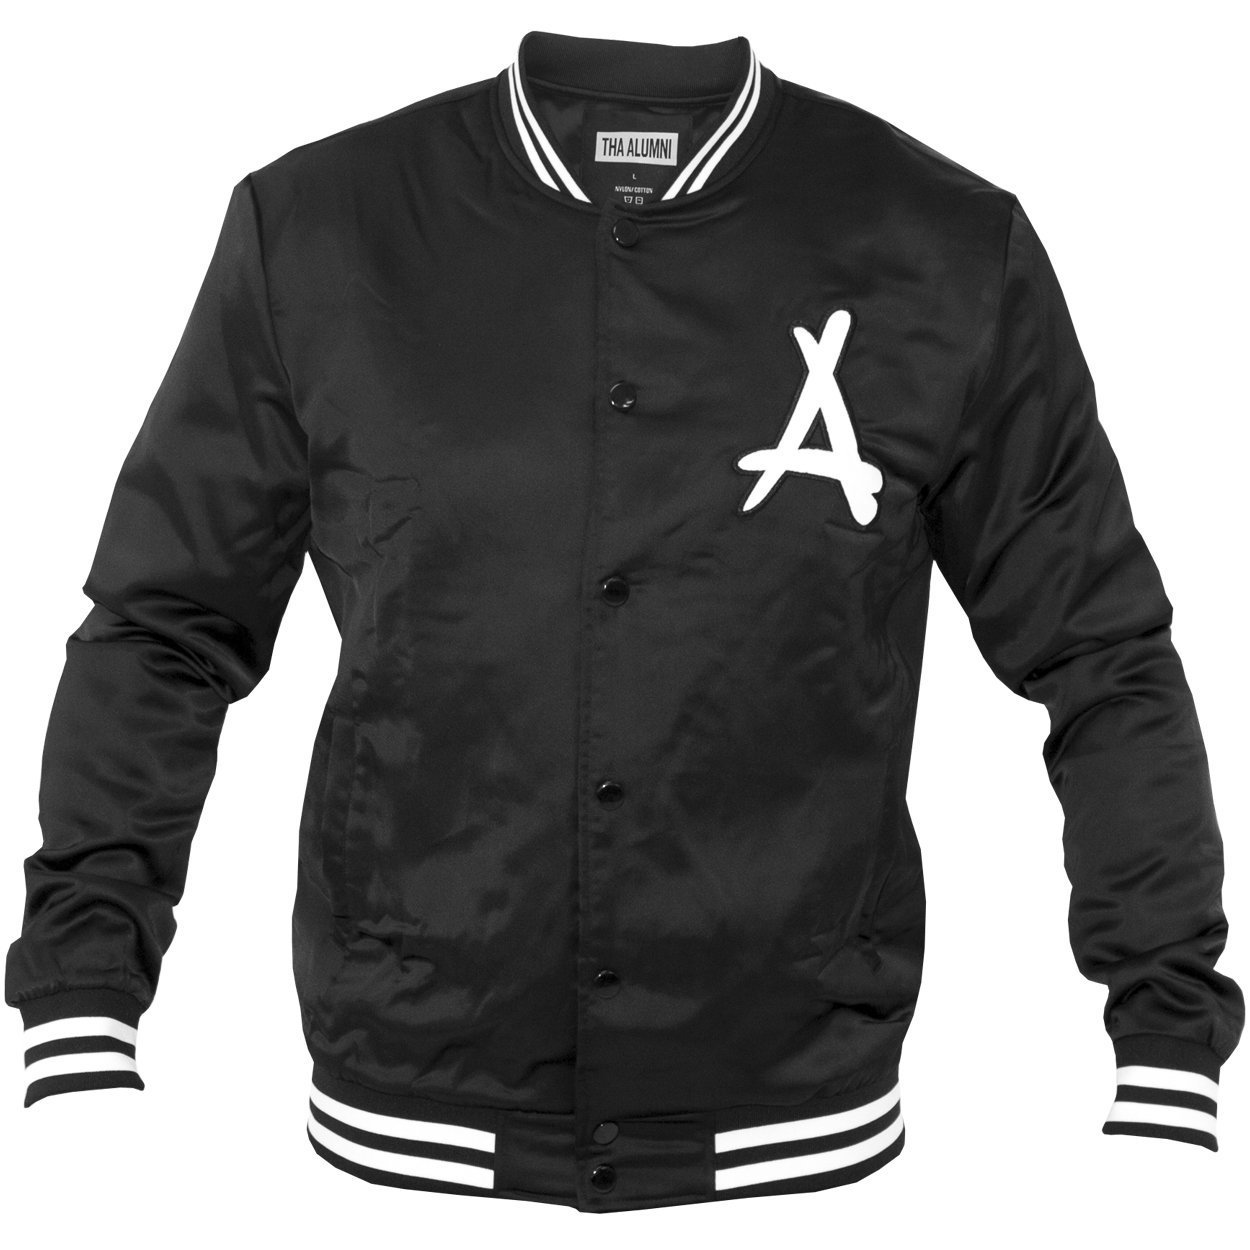 Tha Alumni Clothing 2017 WORLD CHAMPS BASEBALL JACKET